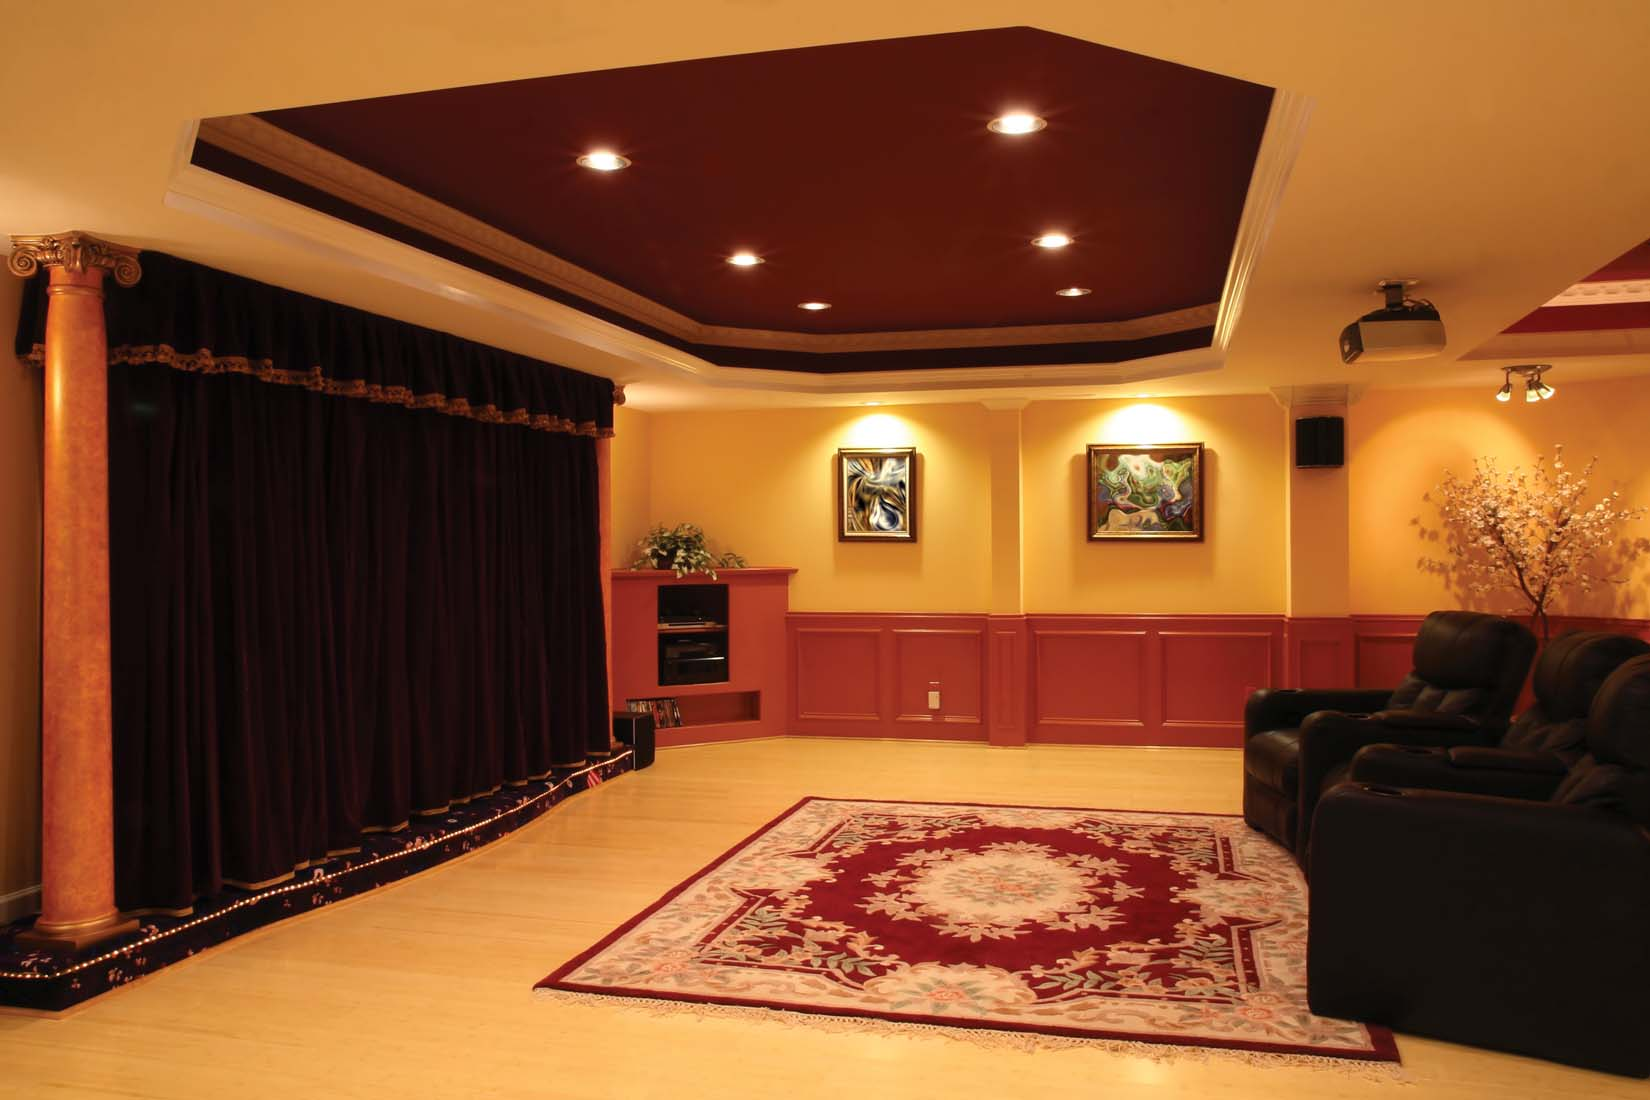 How to light a room for the ultimate home theater for How to light up a room